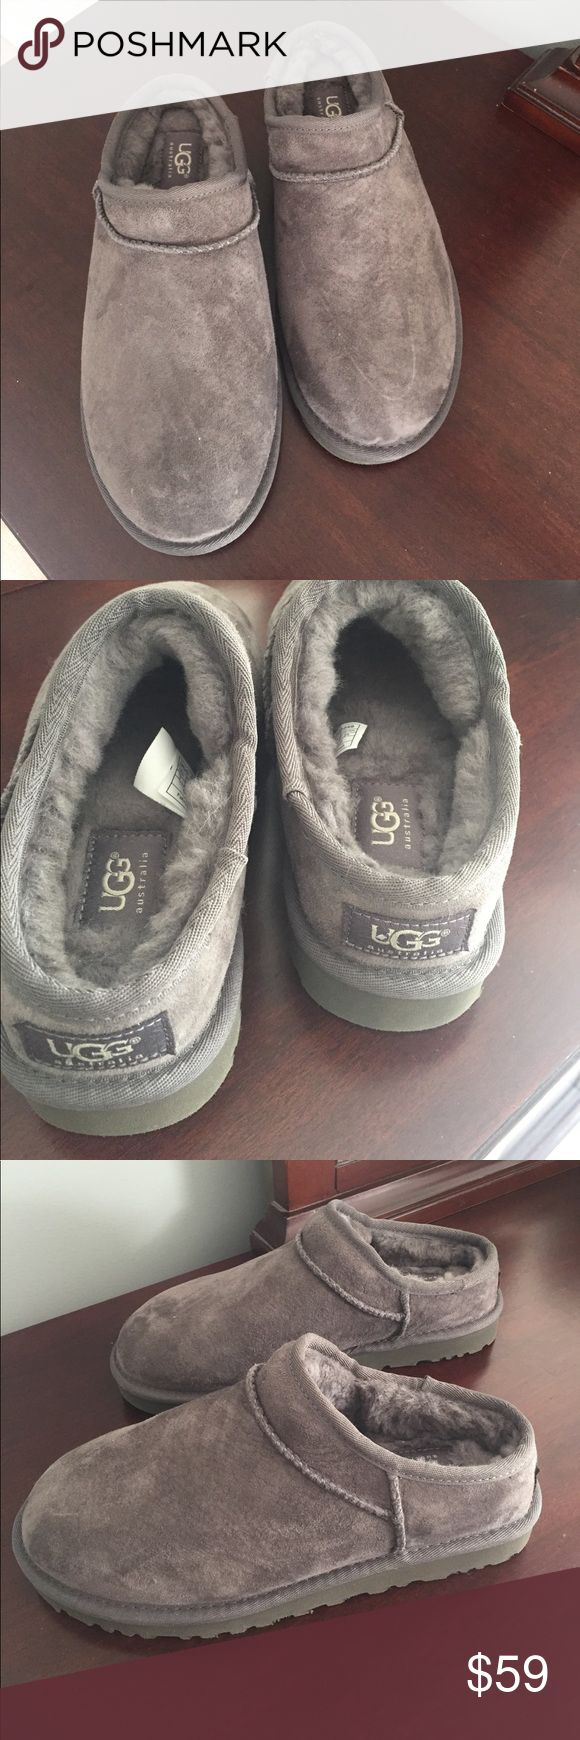 Ugg women's slippers Brand new, never worn women's ugg slippers with fur inside.  Water resistant. UGG Shoes Slippers